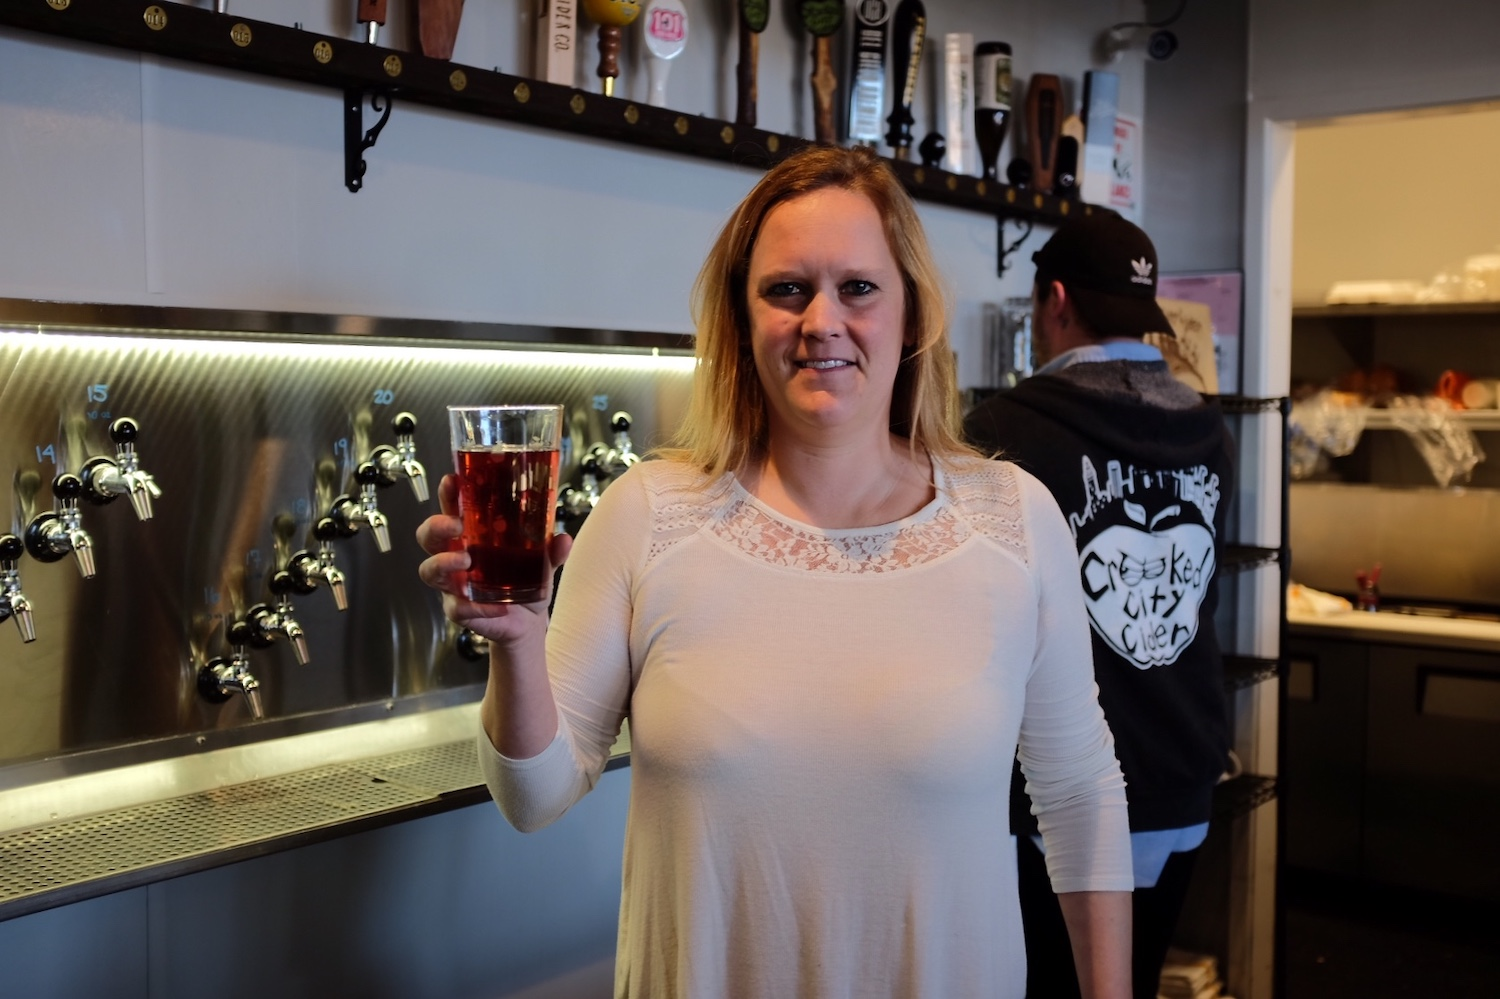 Dana Bushouse, owner of Crooked City Cider Taphouse in Oakland.